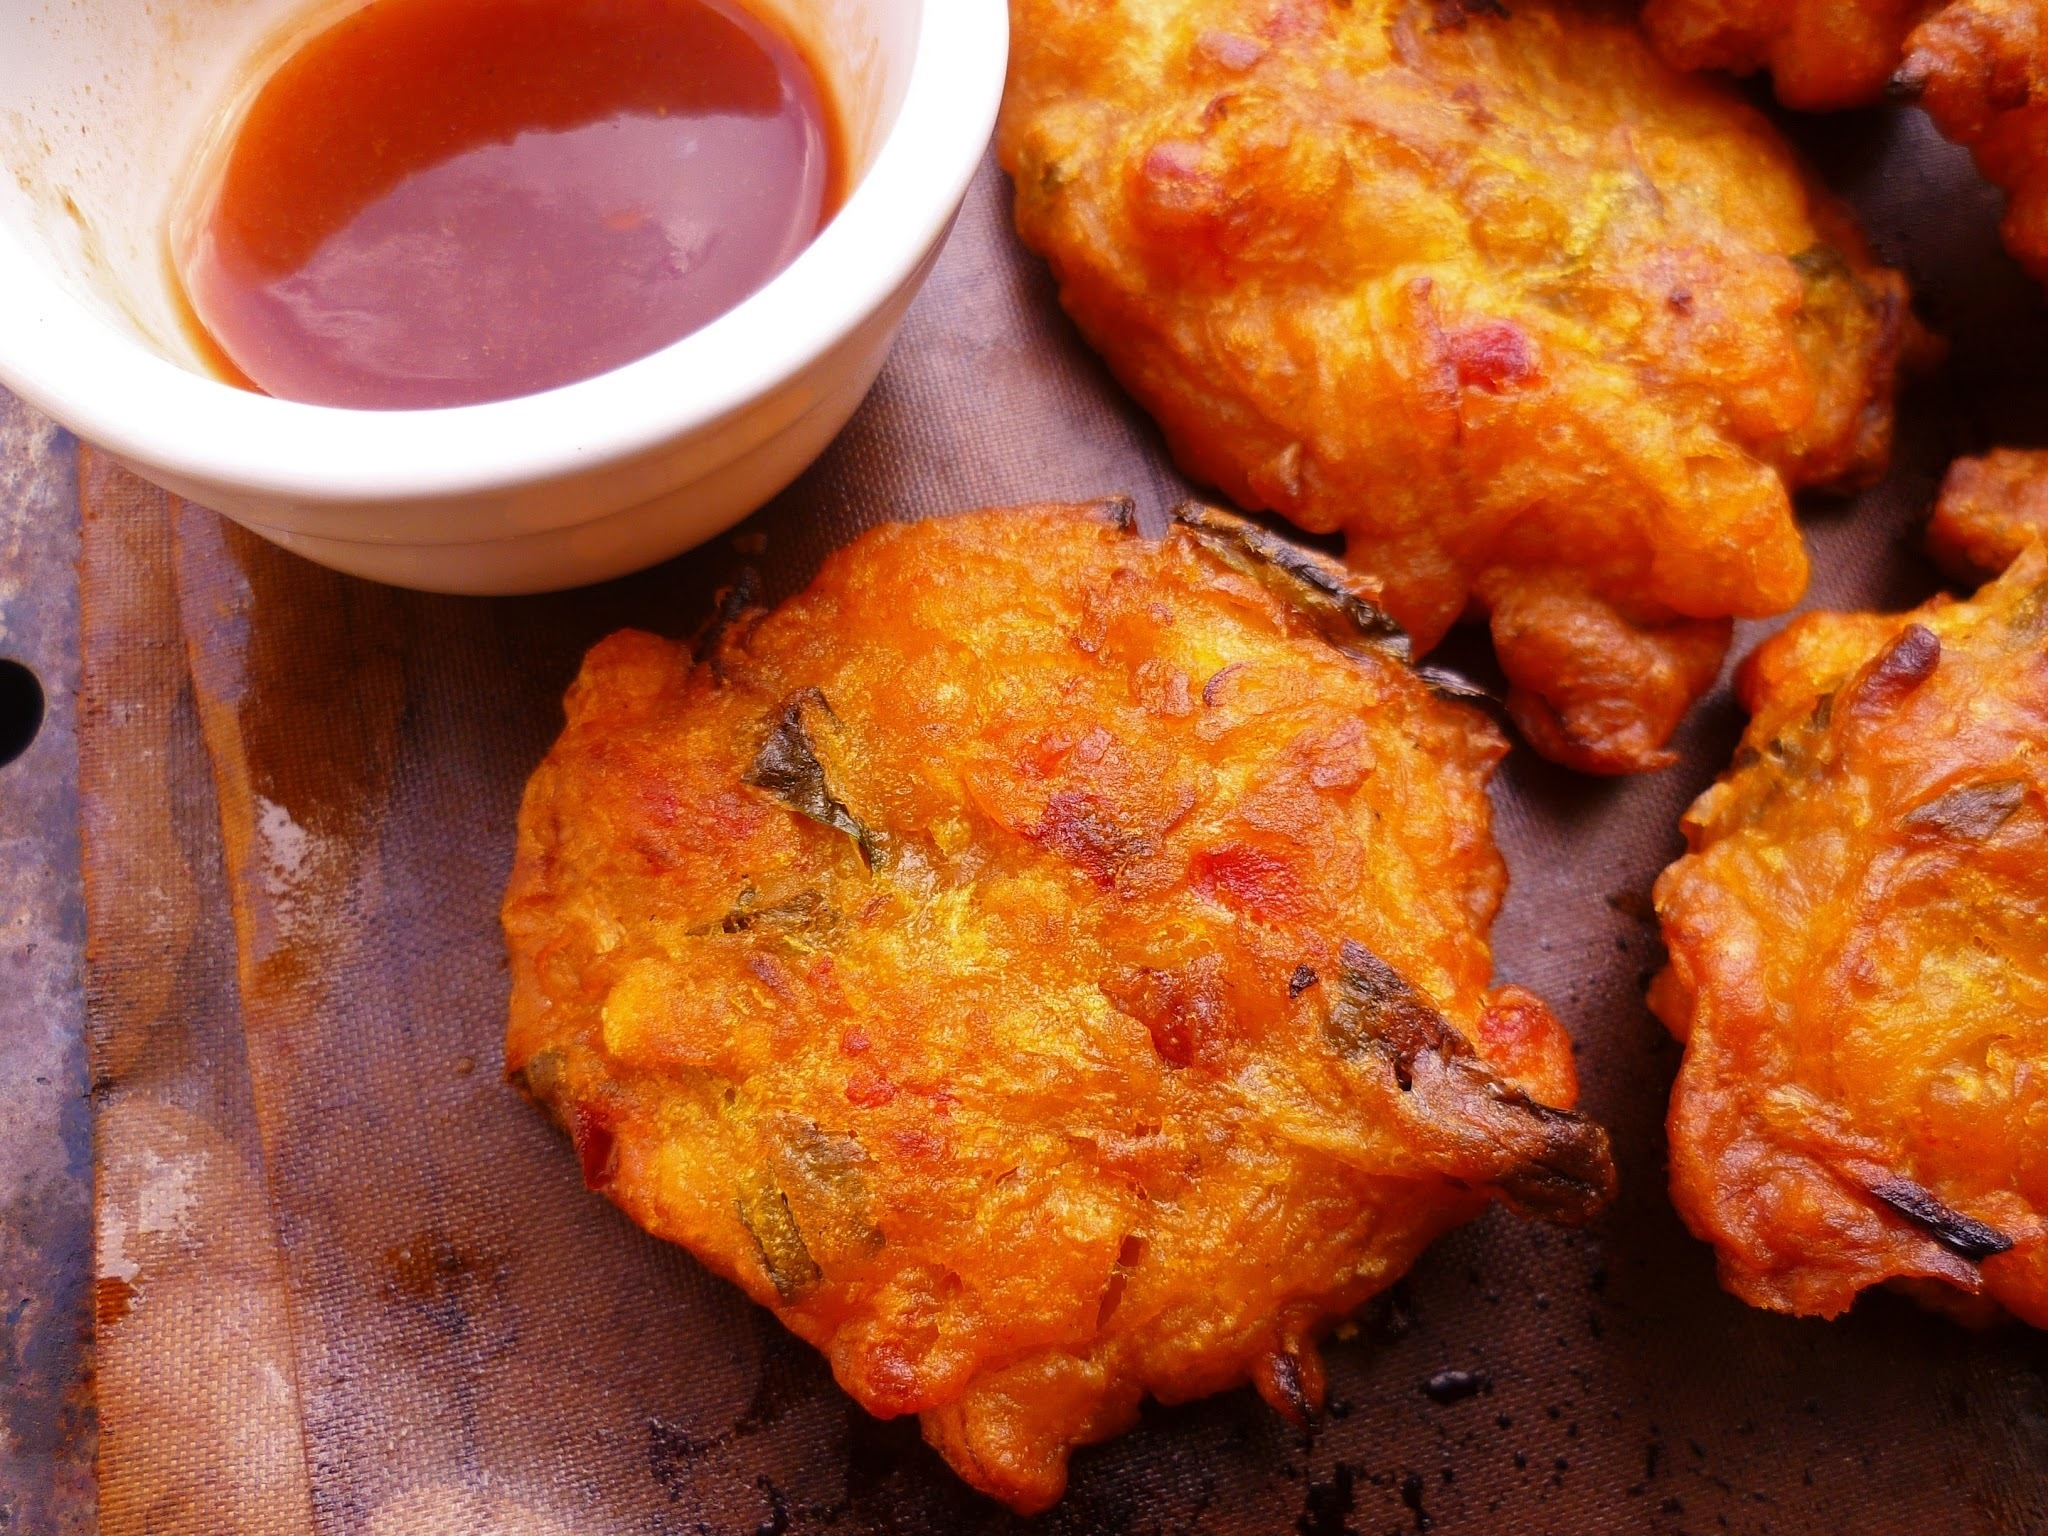 malaysian crispy prawn fritters (cucur udang) with a sweet chilli dipping sauce